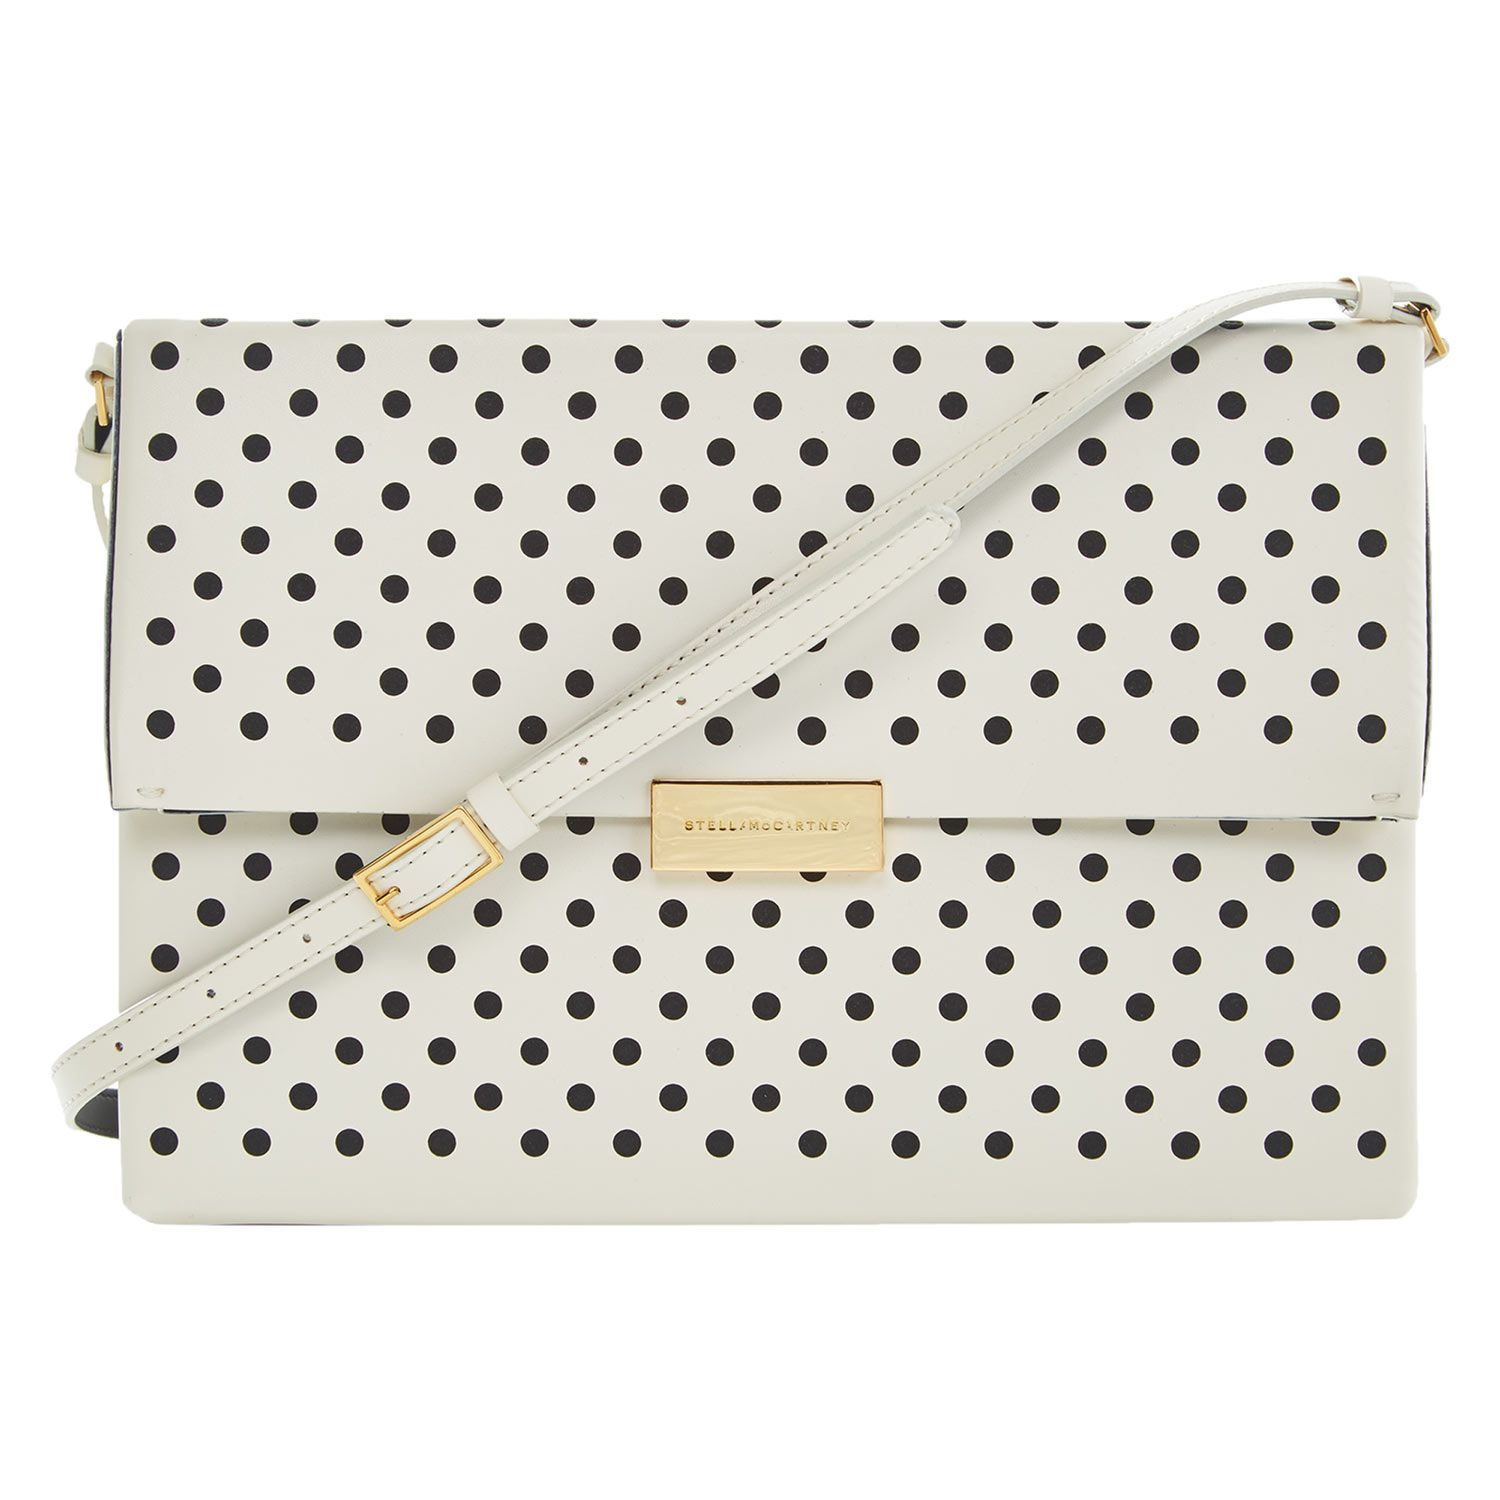 """Stella McCartney"" Cream Polka Dot Shoulder Bag - TK Maxx"